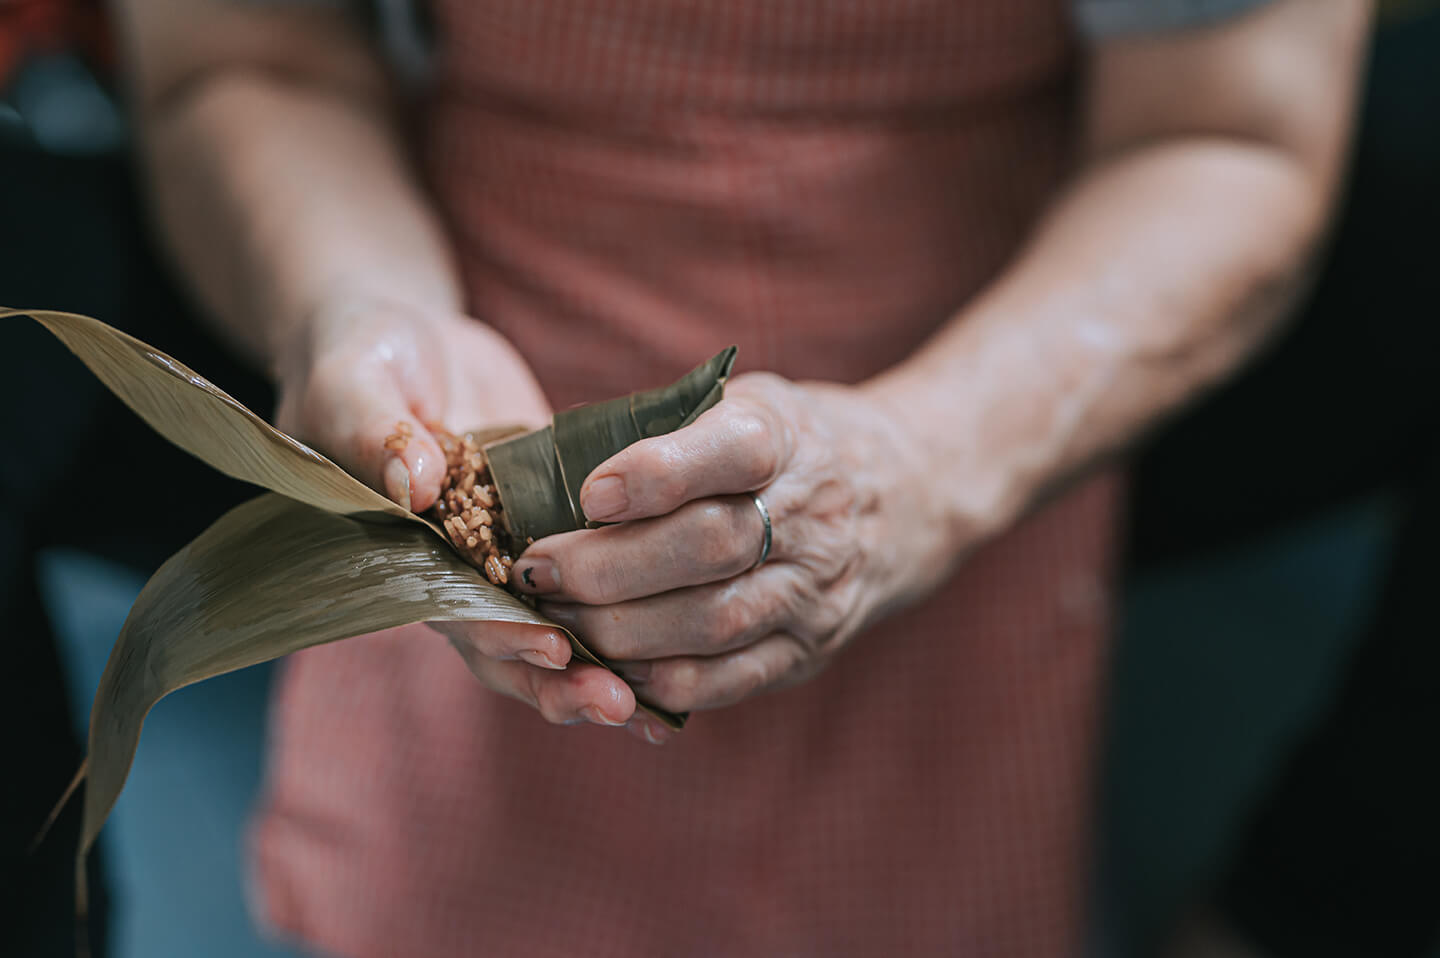 Expert hands gently wrapping rice in bamboo leaves.